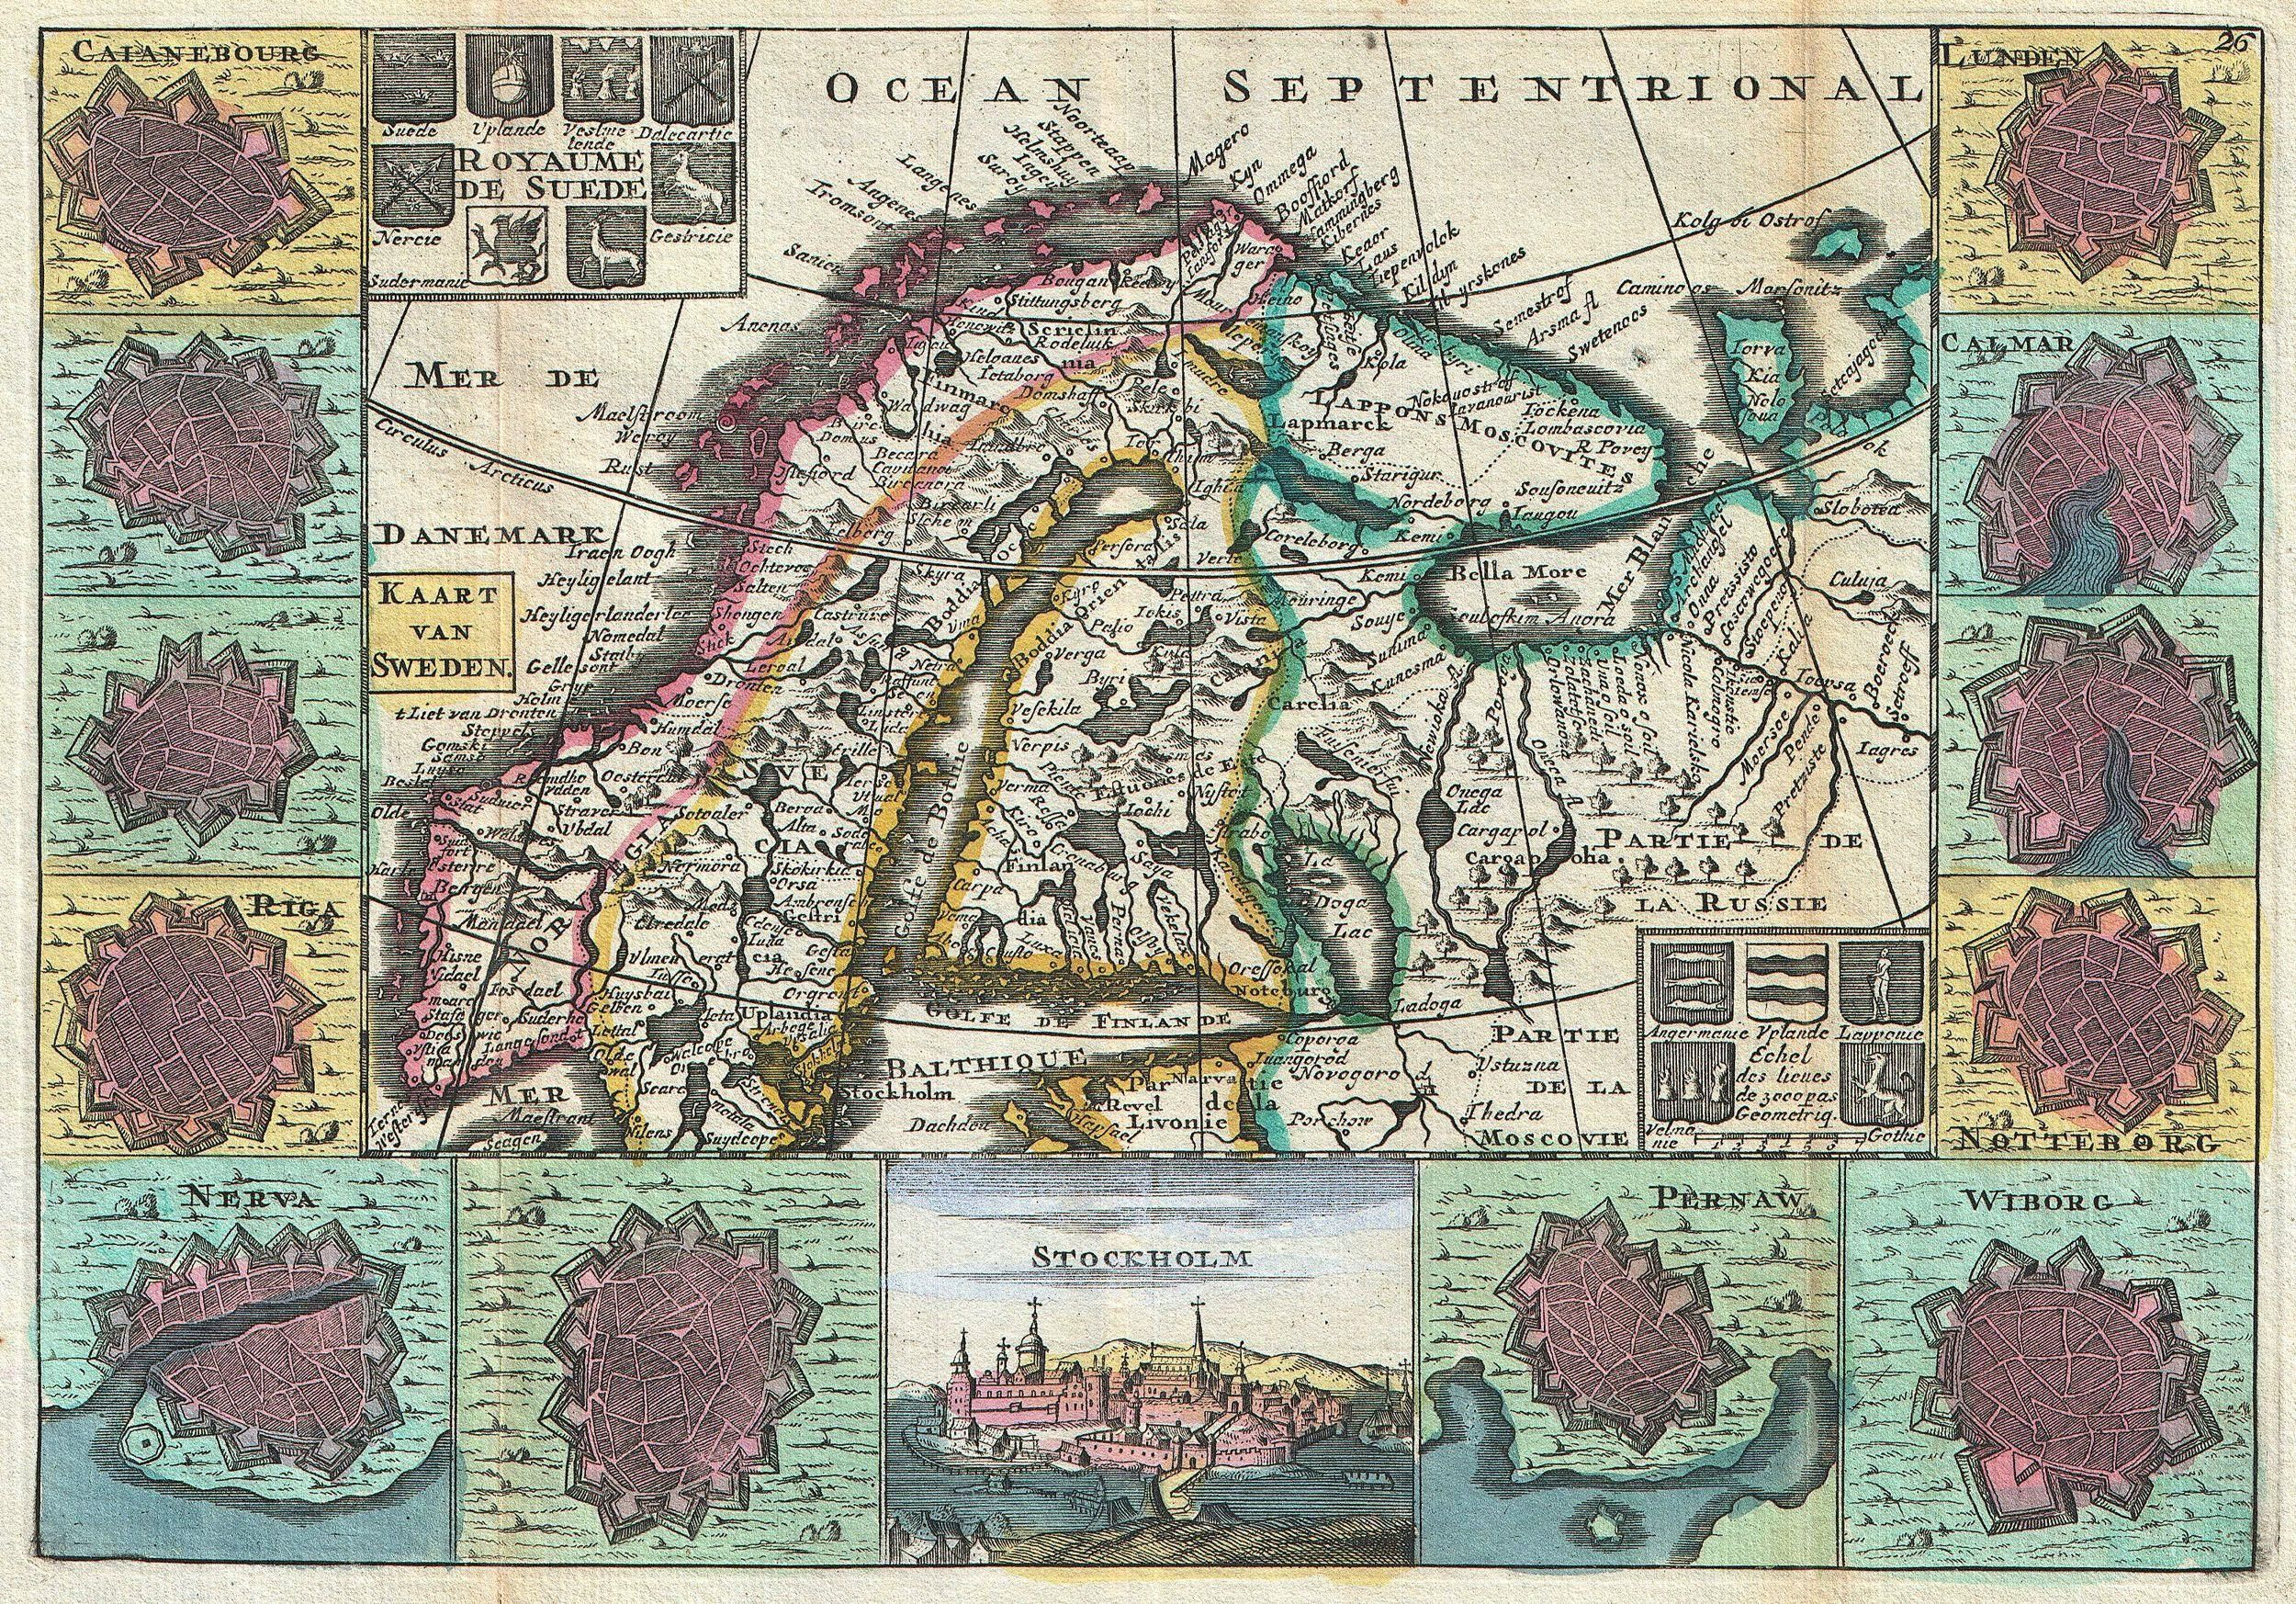 A stunning map of Scandinavia first drawn by Daniel de la Feuille in 1706. Covers all of Norway, Sweden and Finland along with parts of modern day Latvia, Estonia and Russia.